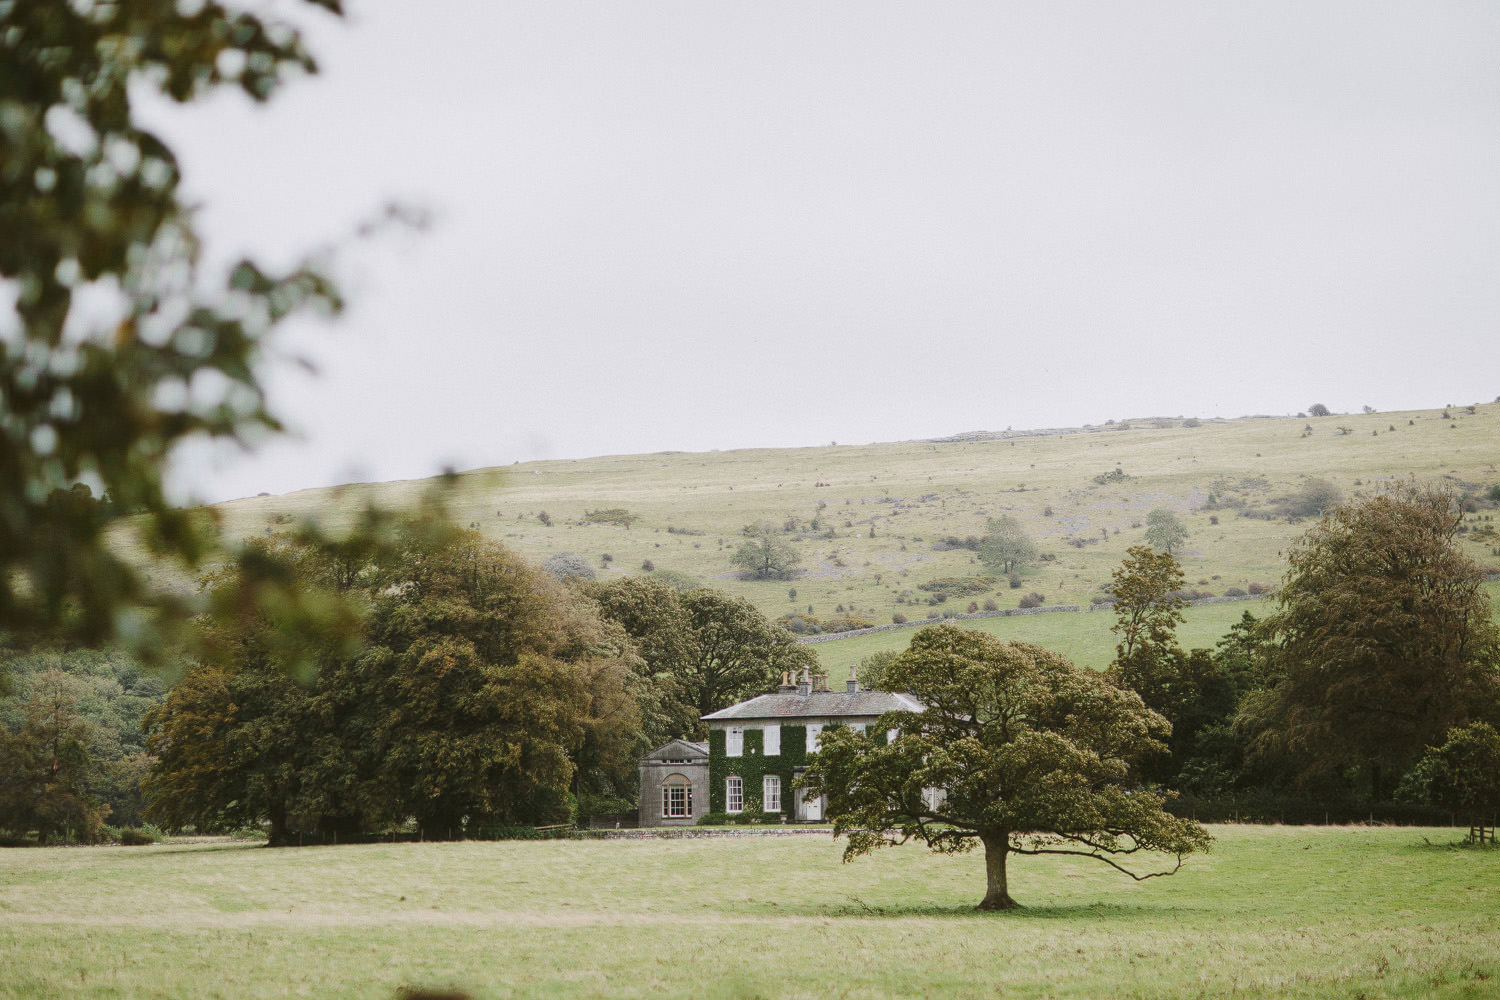 Longlands at Carmel manor house surrounded by hills